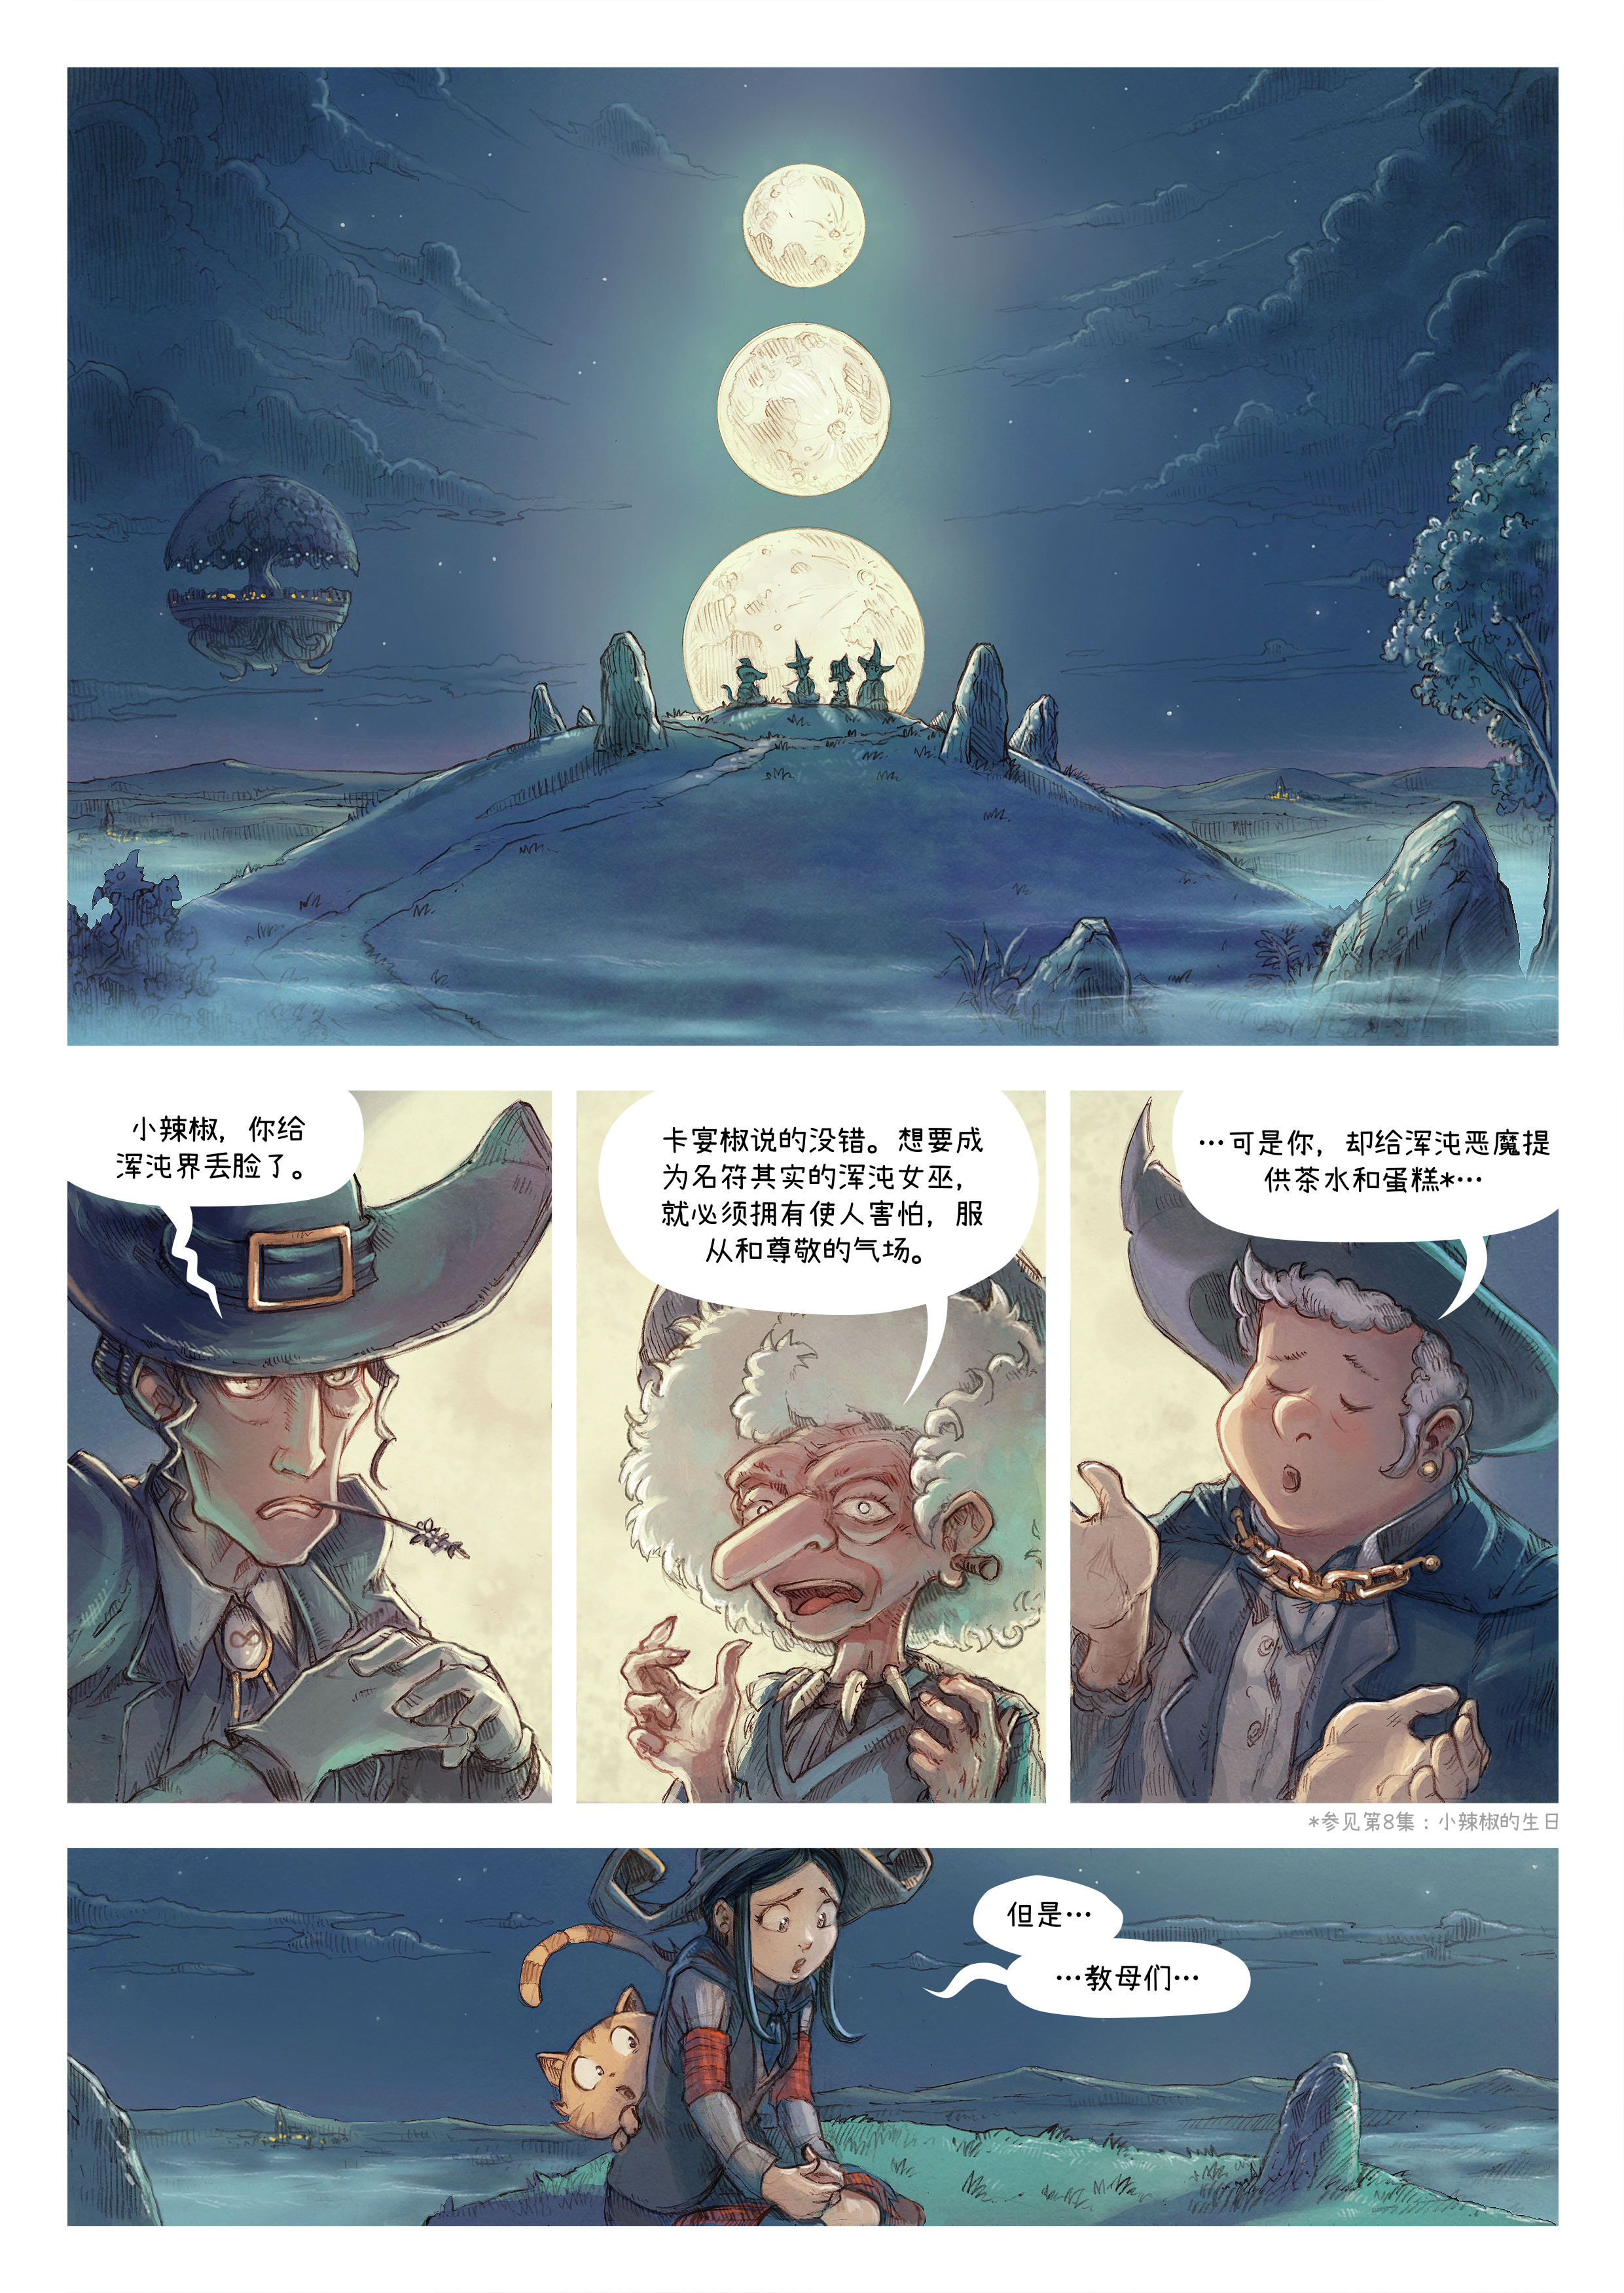 A webcomic page of Pepper&Carrot, 漫画全集 11 [cn], 页面 1